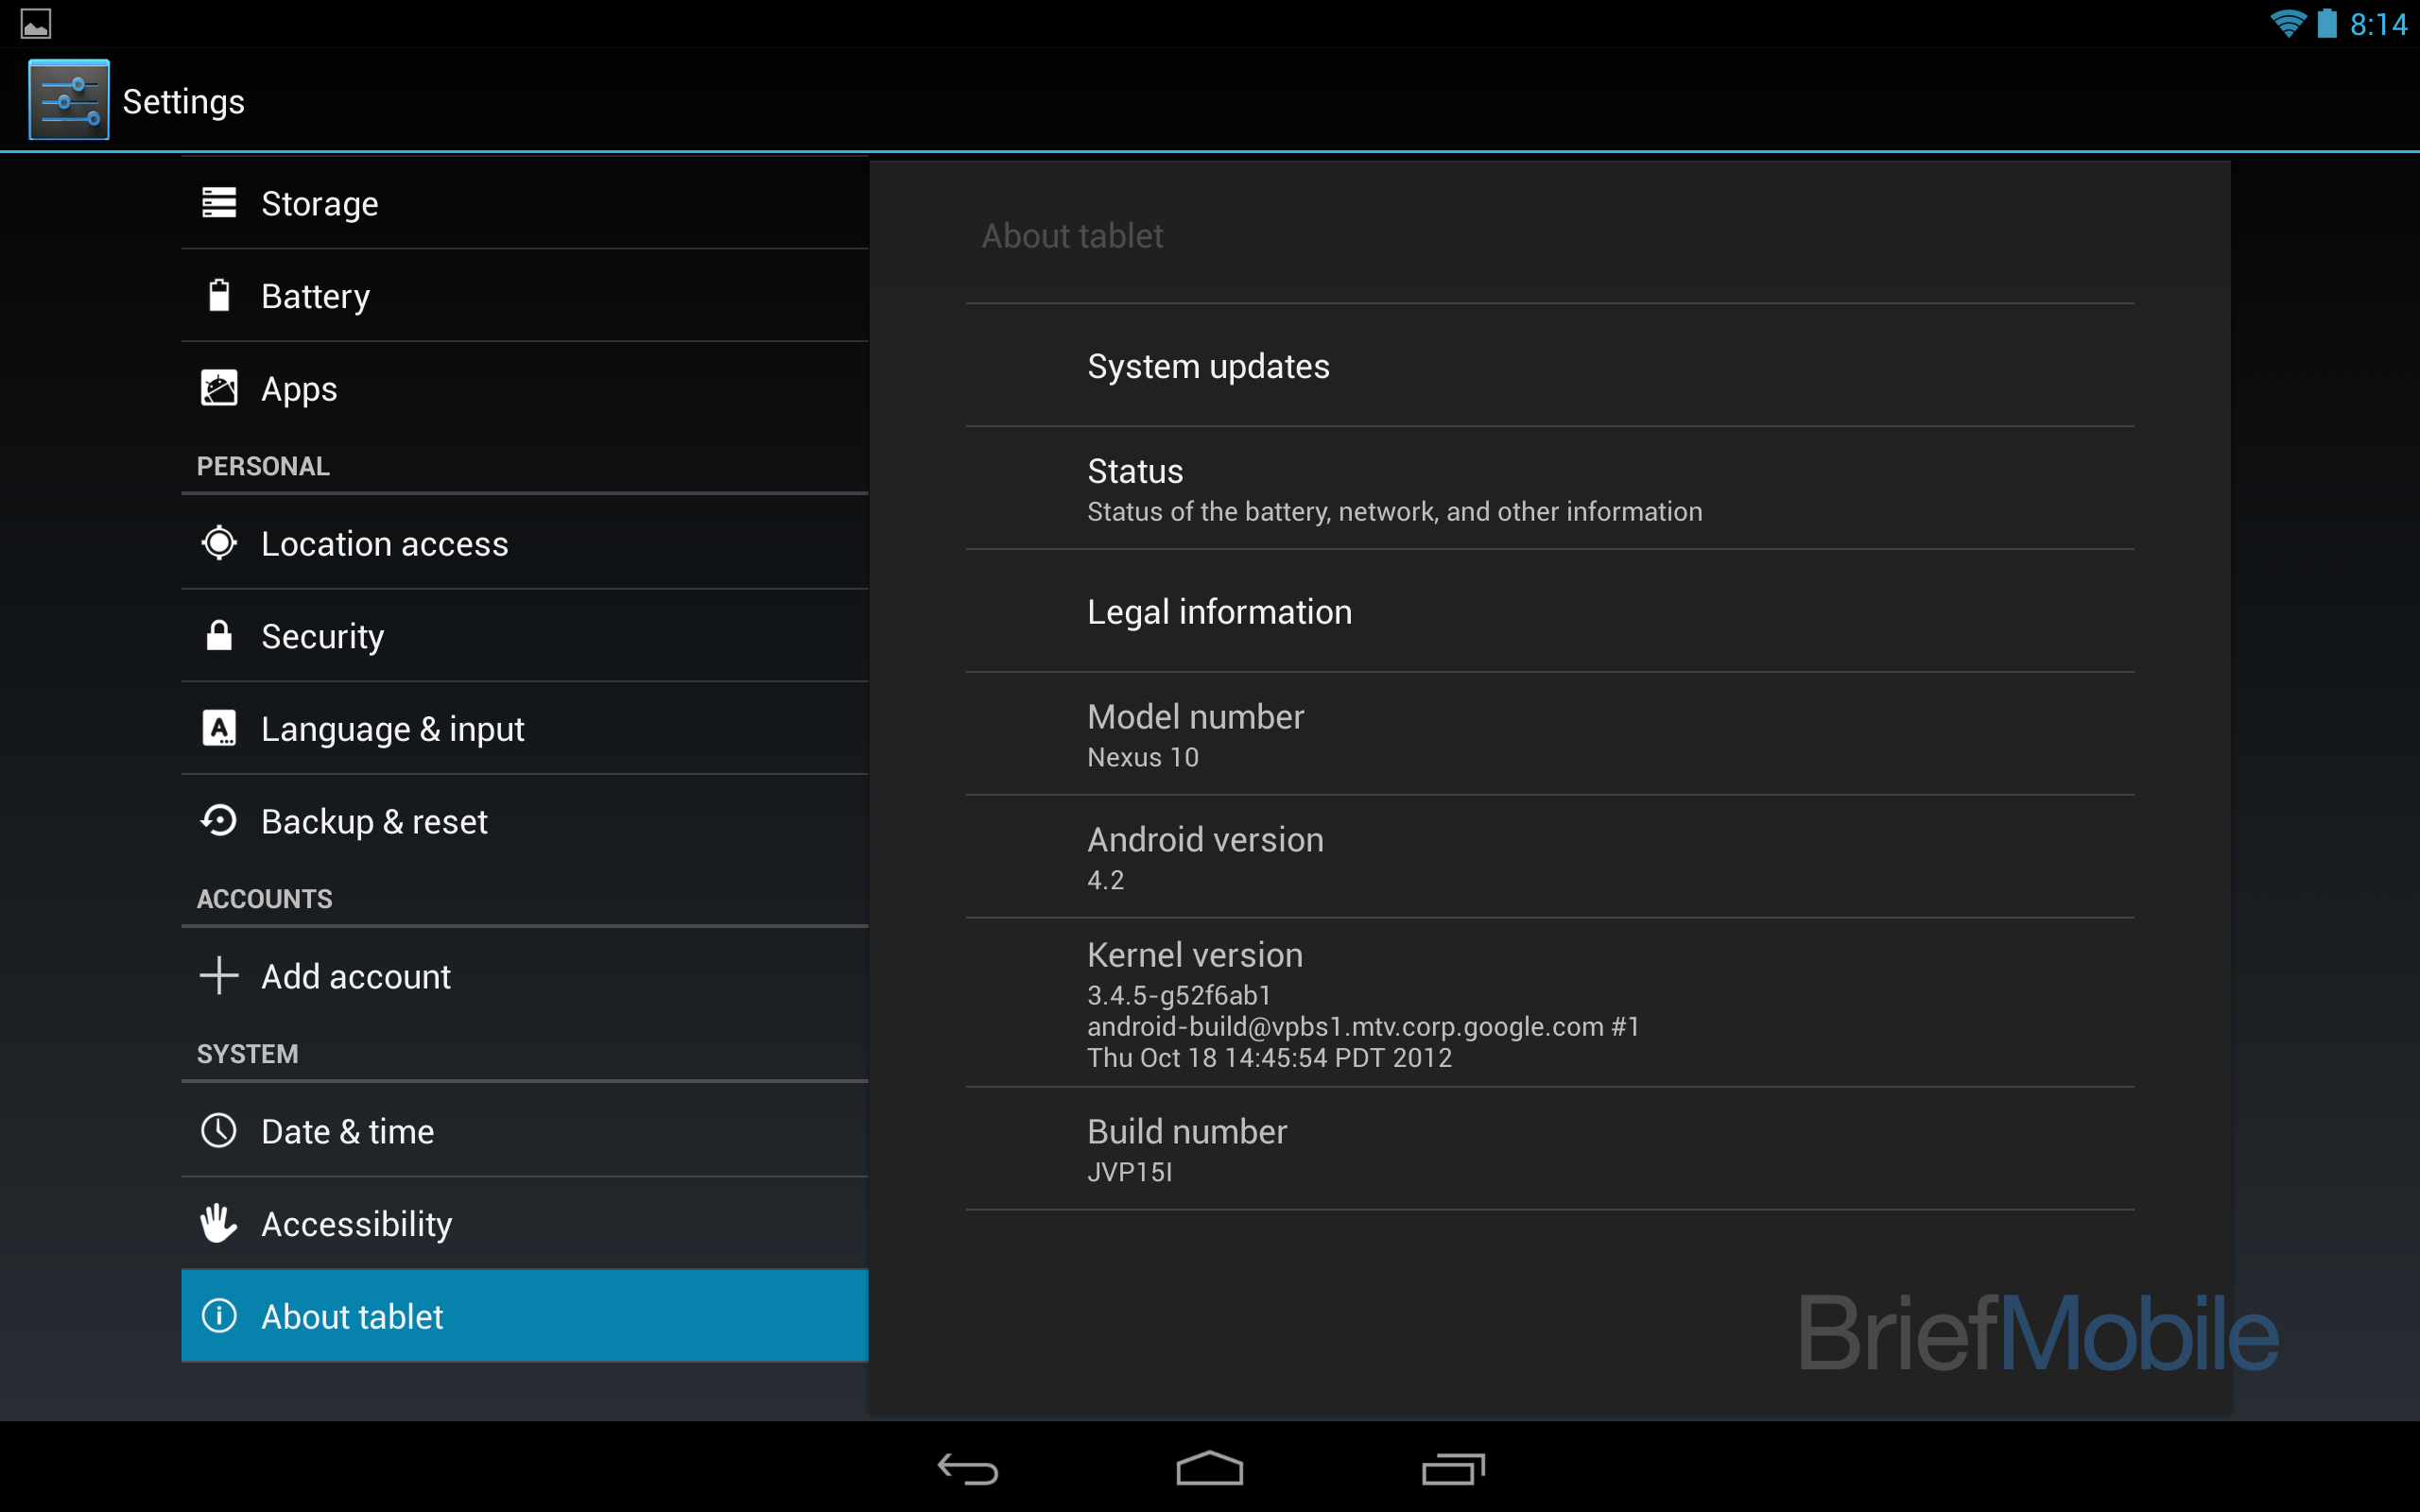 Kernel Android 4.2